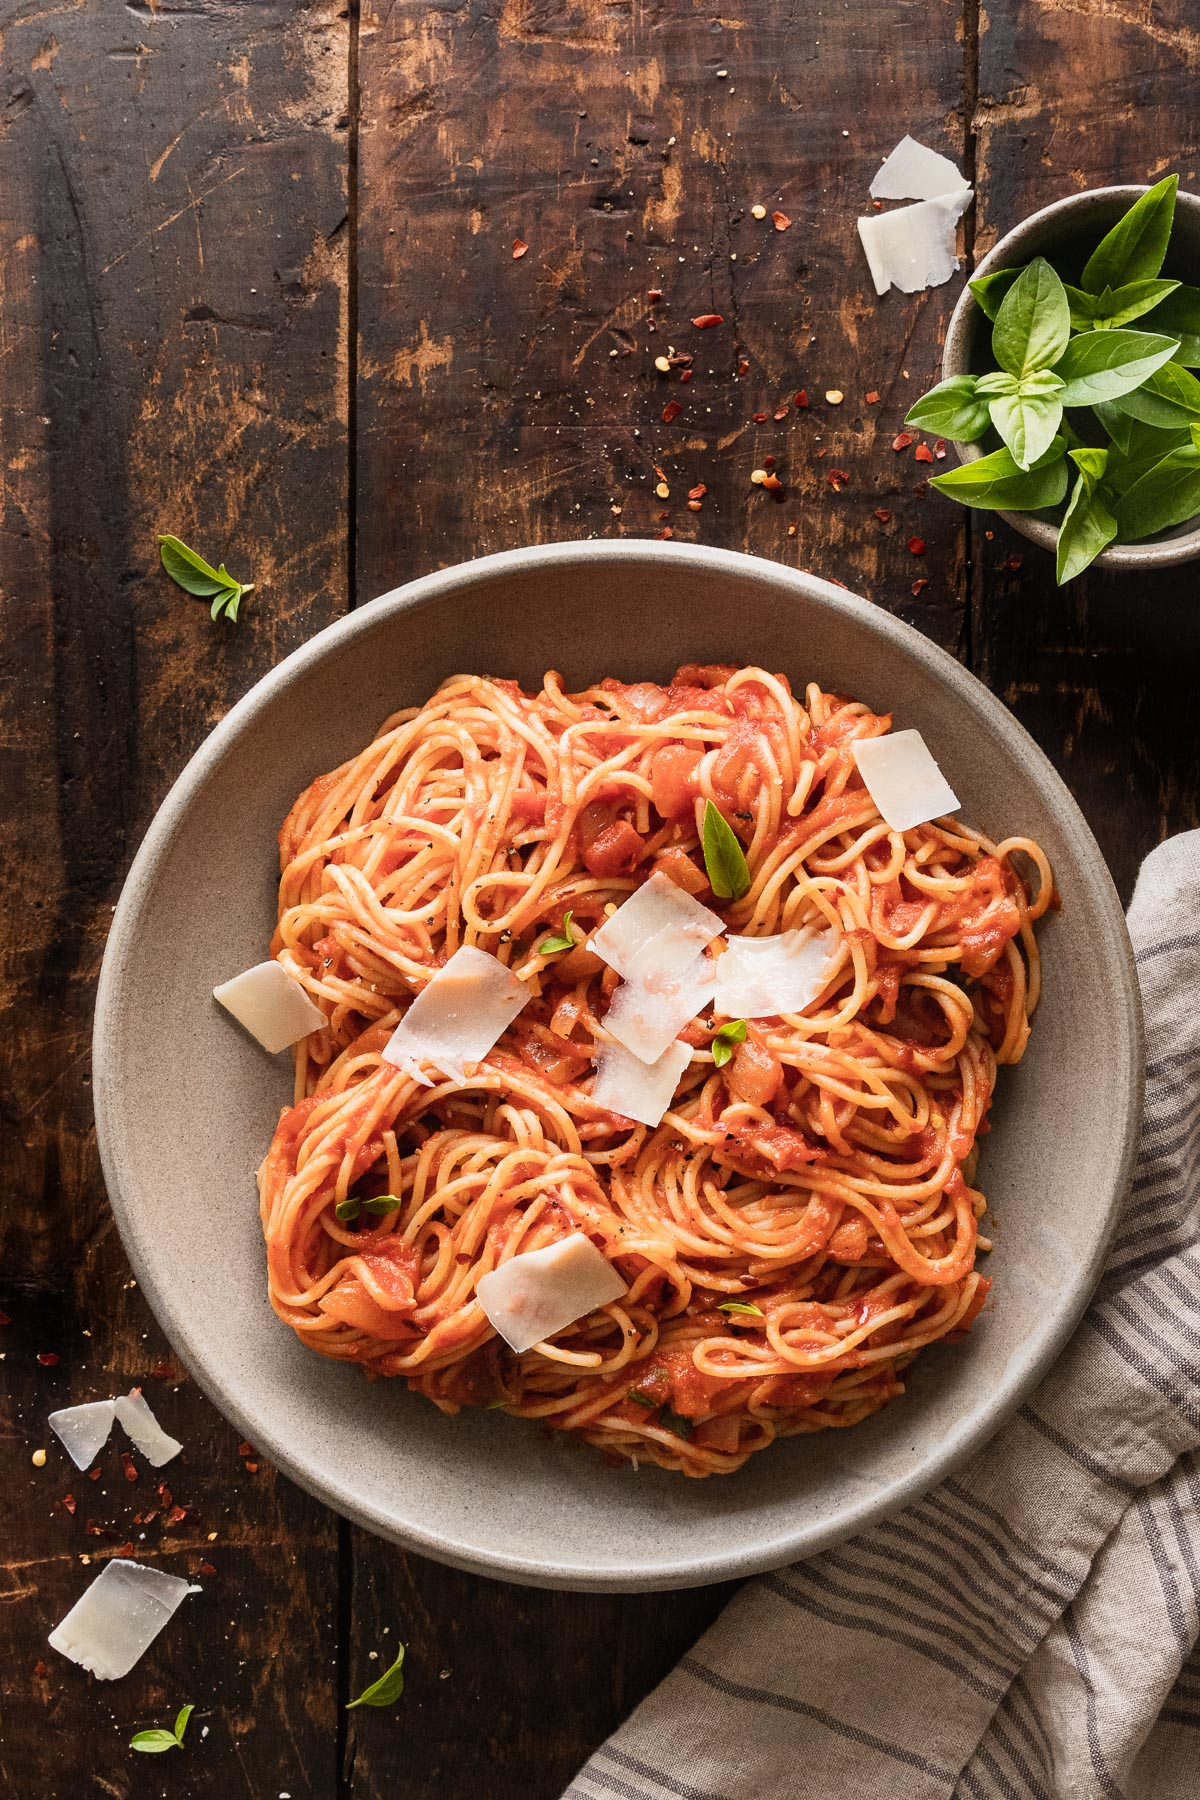 image of spaghetti arrabbiata in dish with striped towel next to dish and basil in a bowl